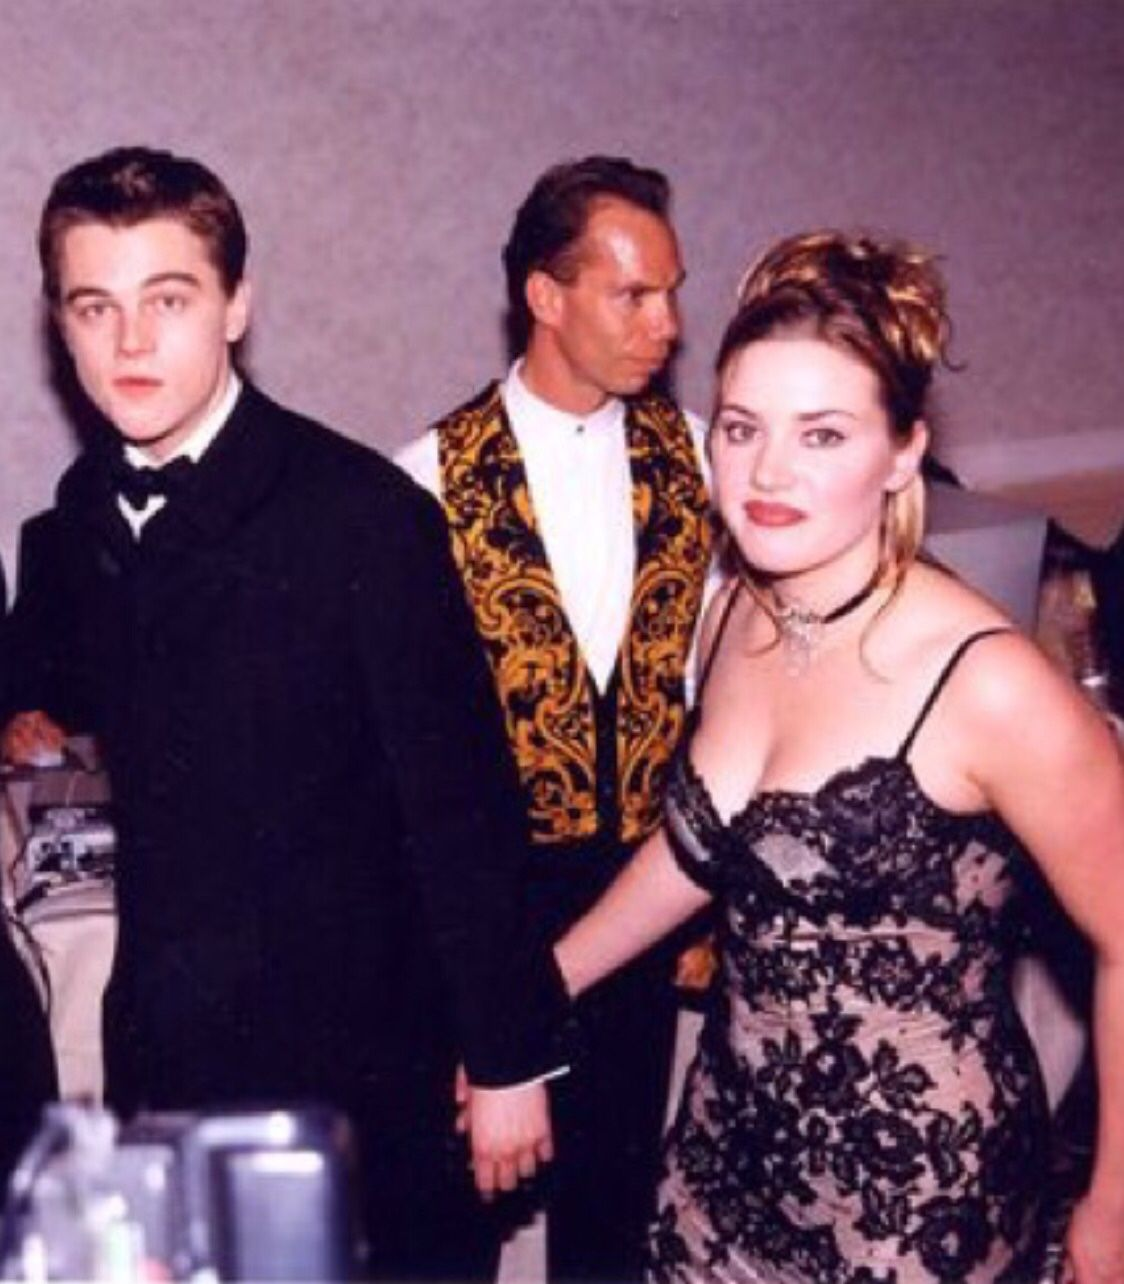 Leonardo Winslet Dicaprio And Dicaprio Kate And Winslet Leonardo Kate